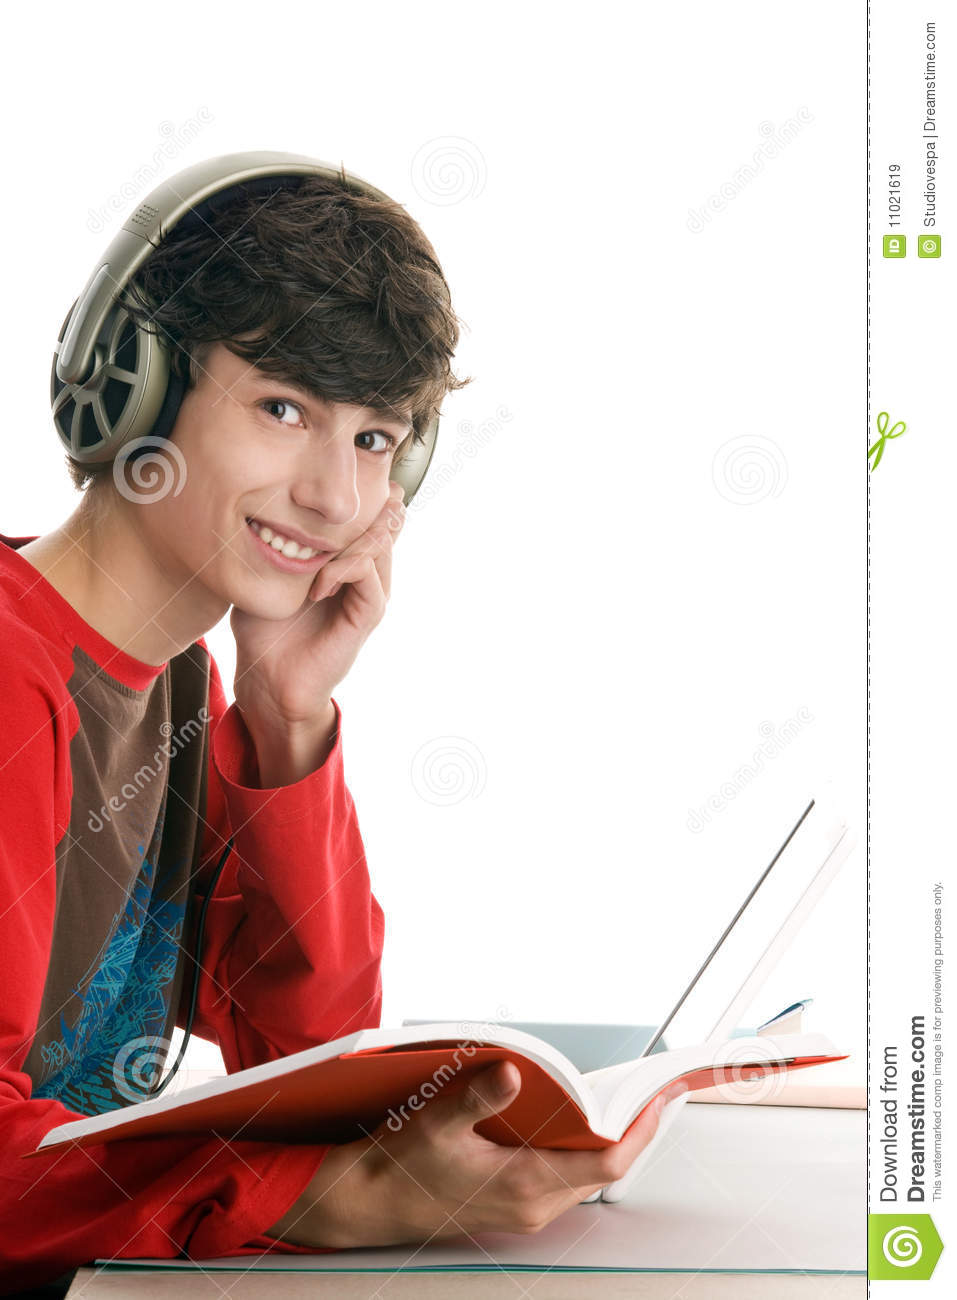 Boy reading book and listening to music